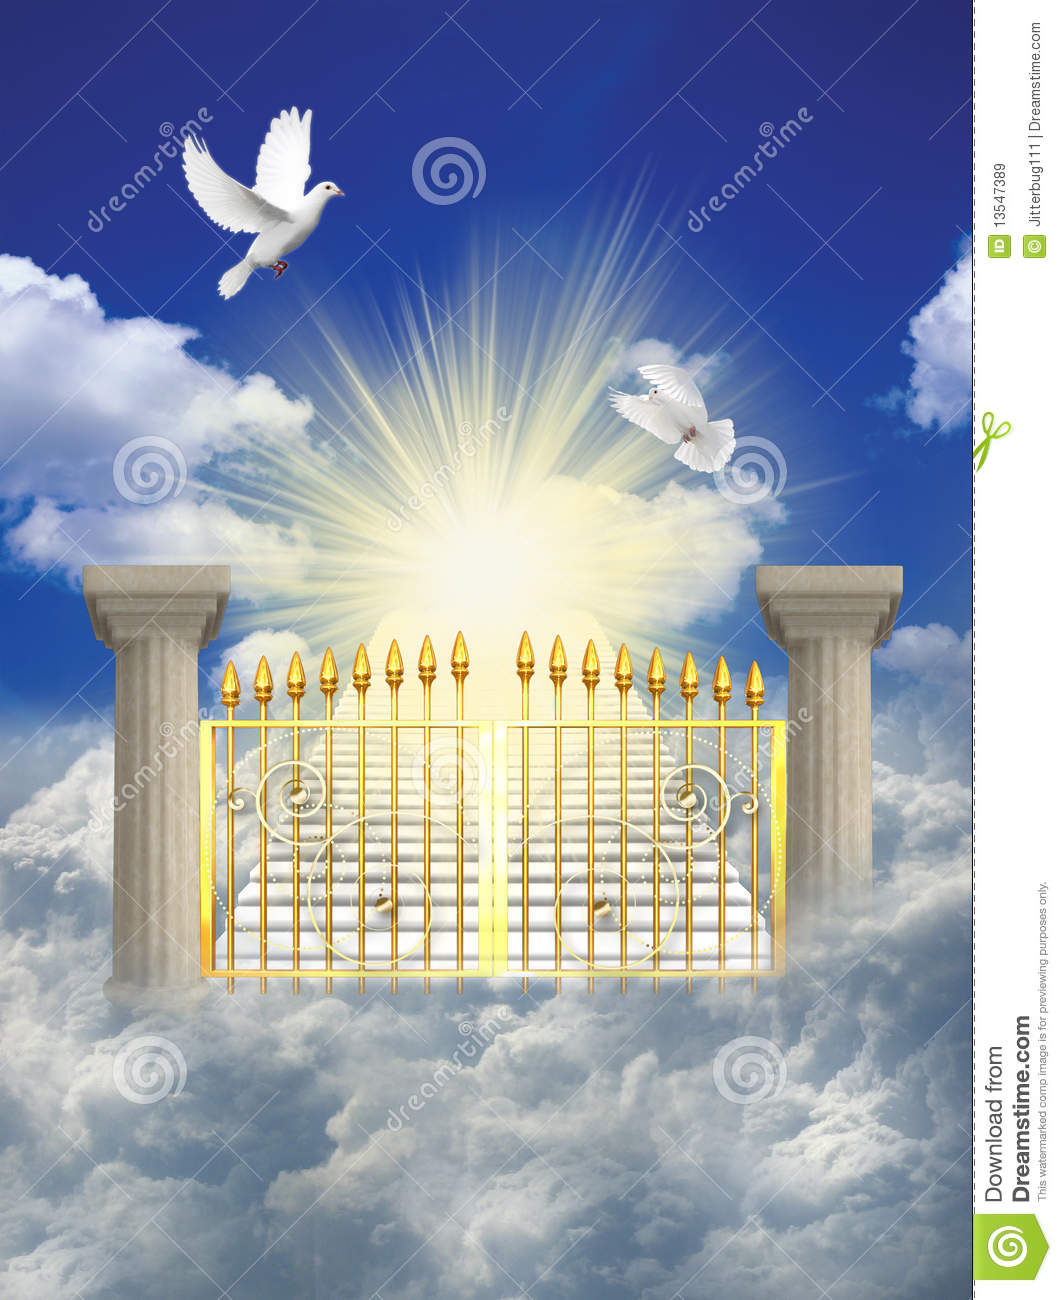 hight resolution of heaven clipart